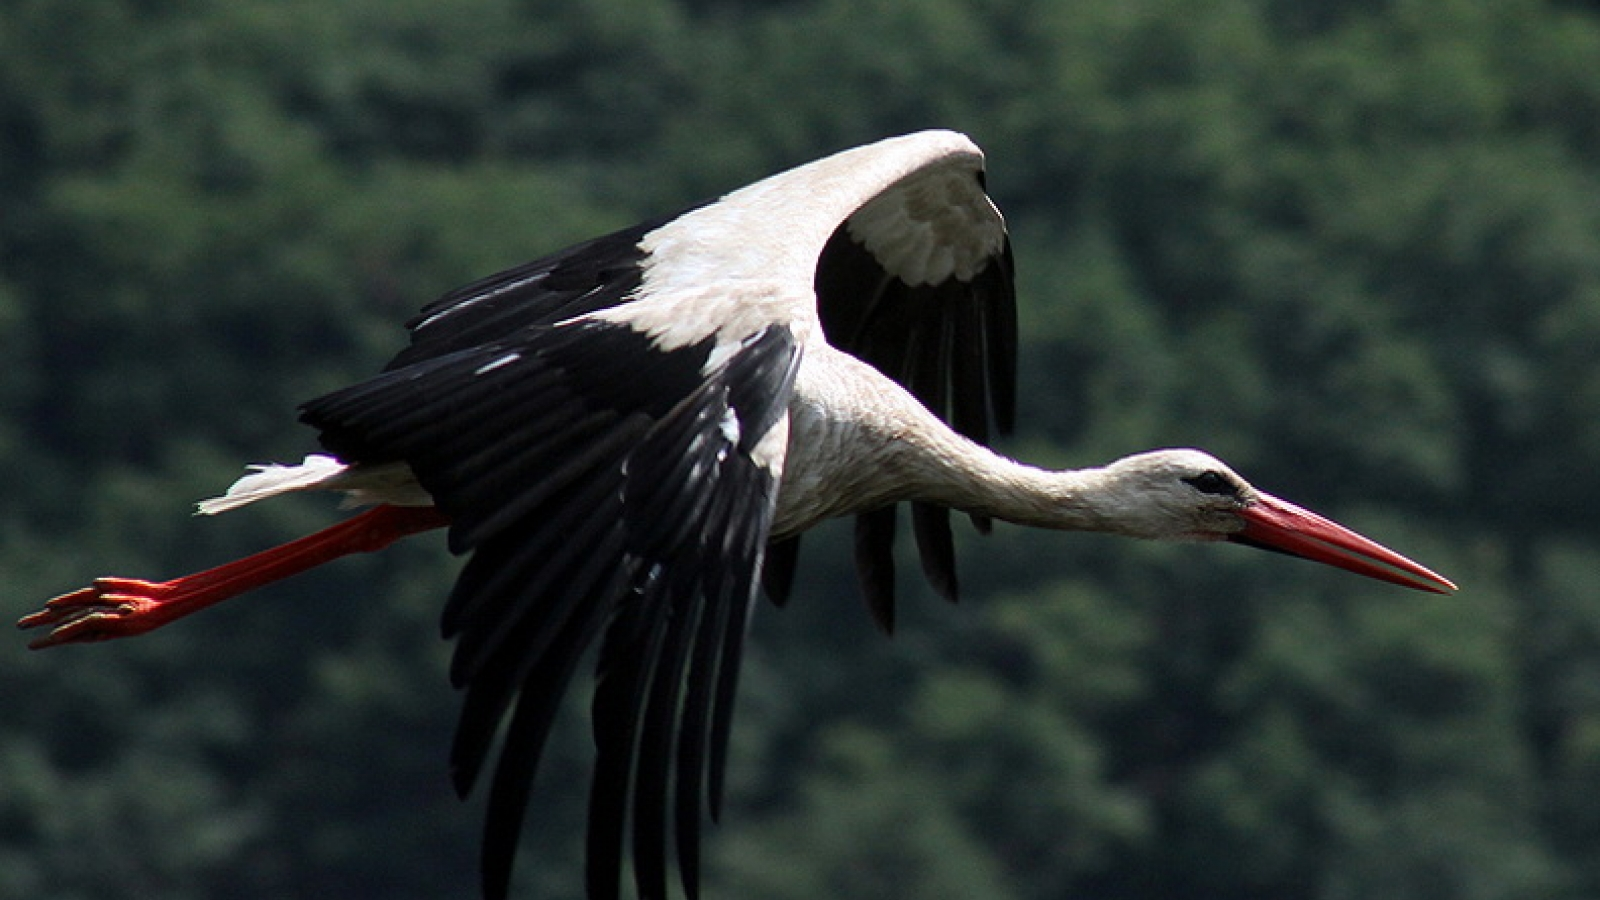 Stork. Khmelnytskyy Region, the Dniester Canyon, Ukraine (Credit: Roman Malko)